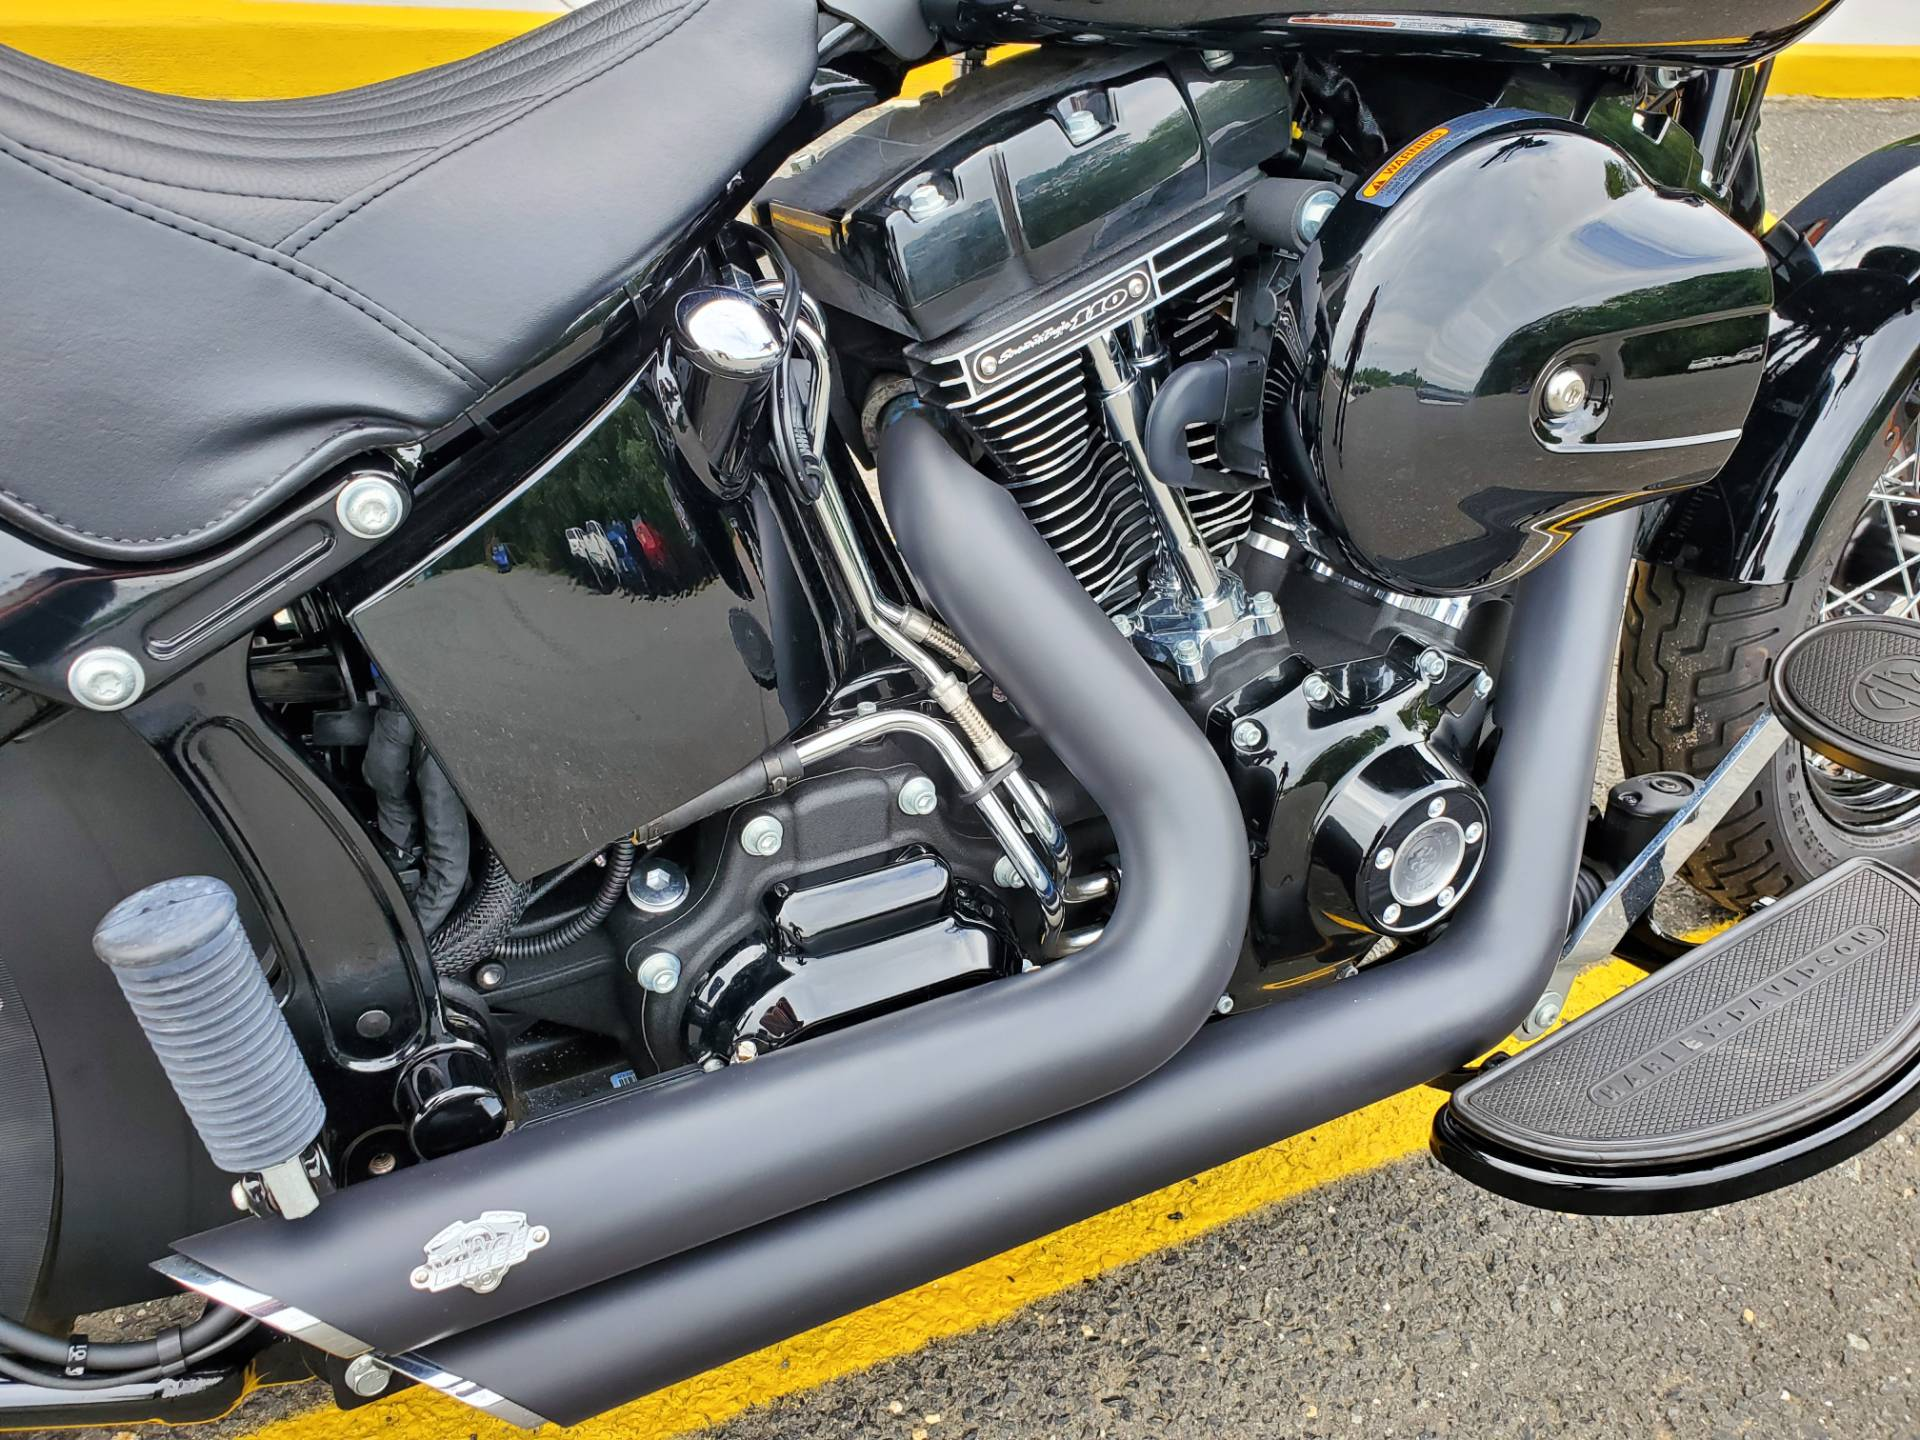 2016 Harley-Davidson Slim in West Long Branch, New Jersey - Photo 9